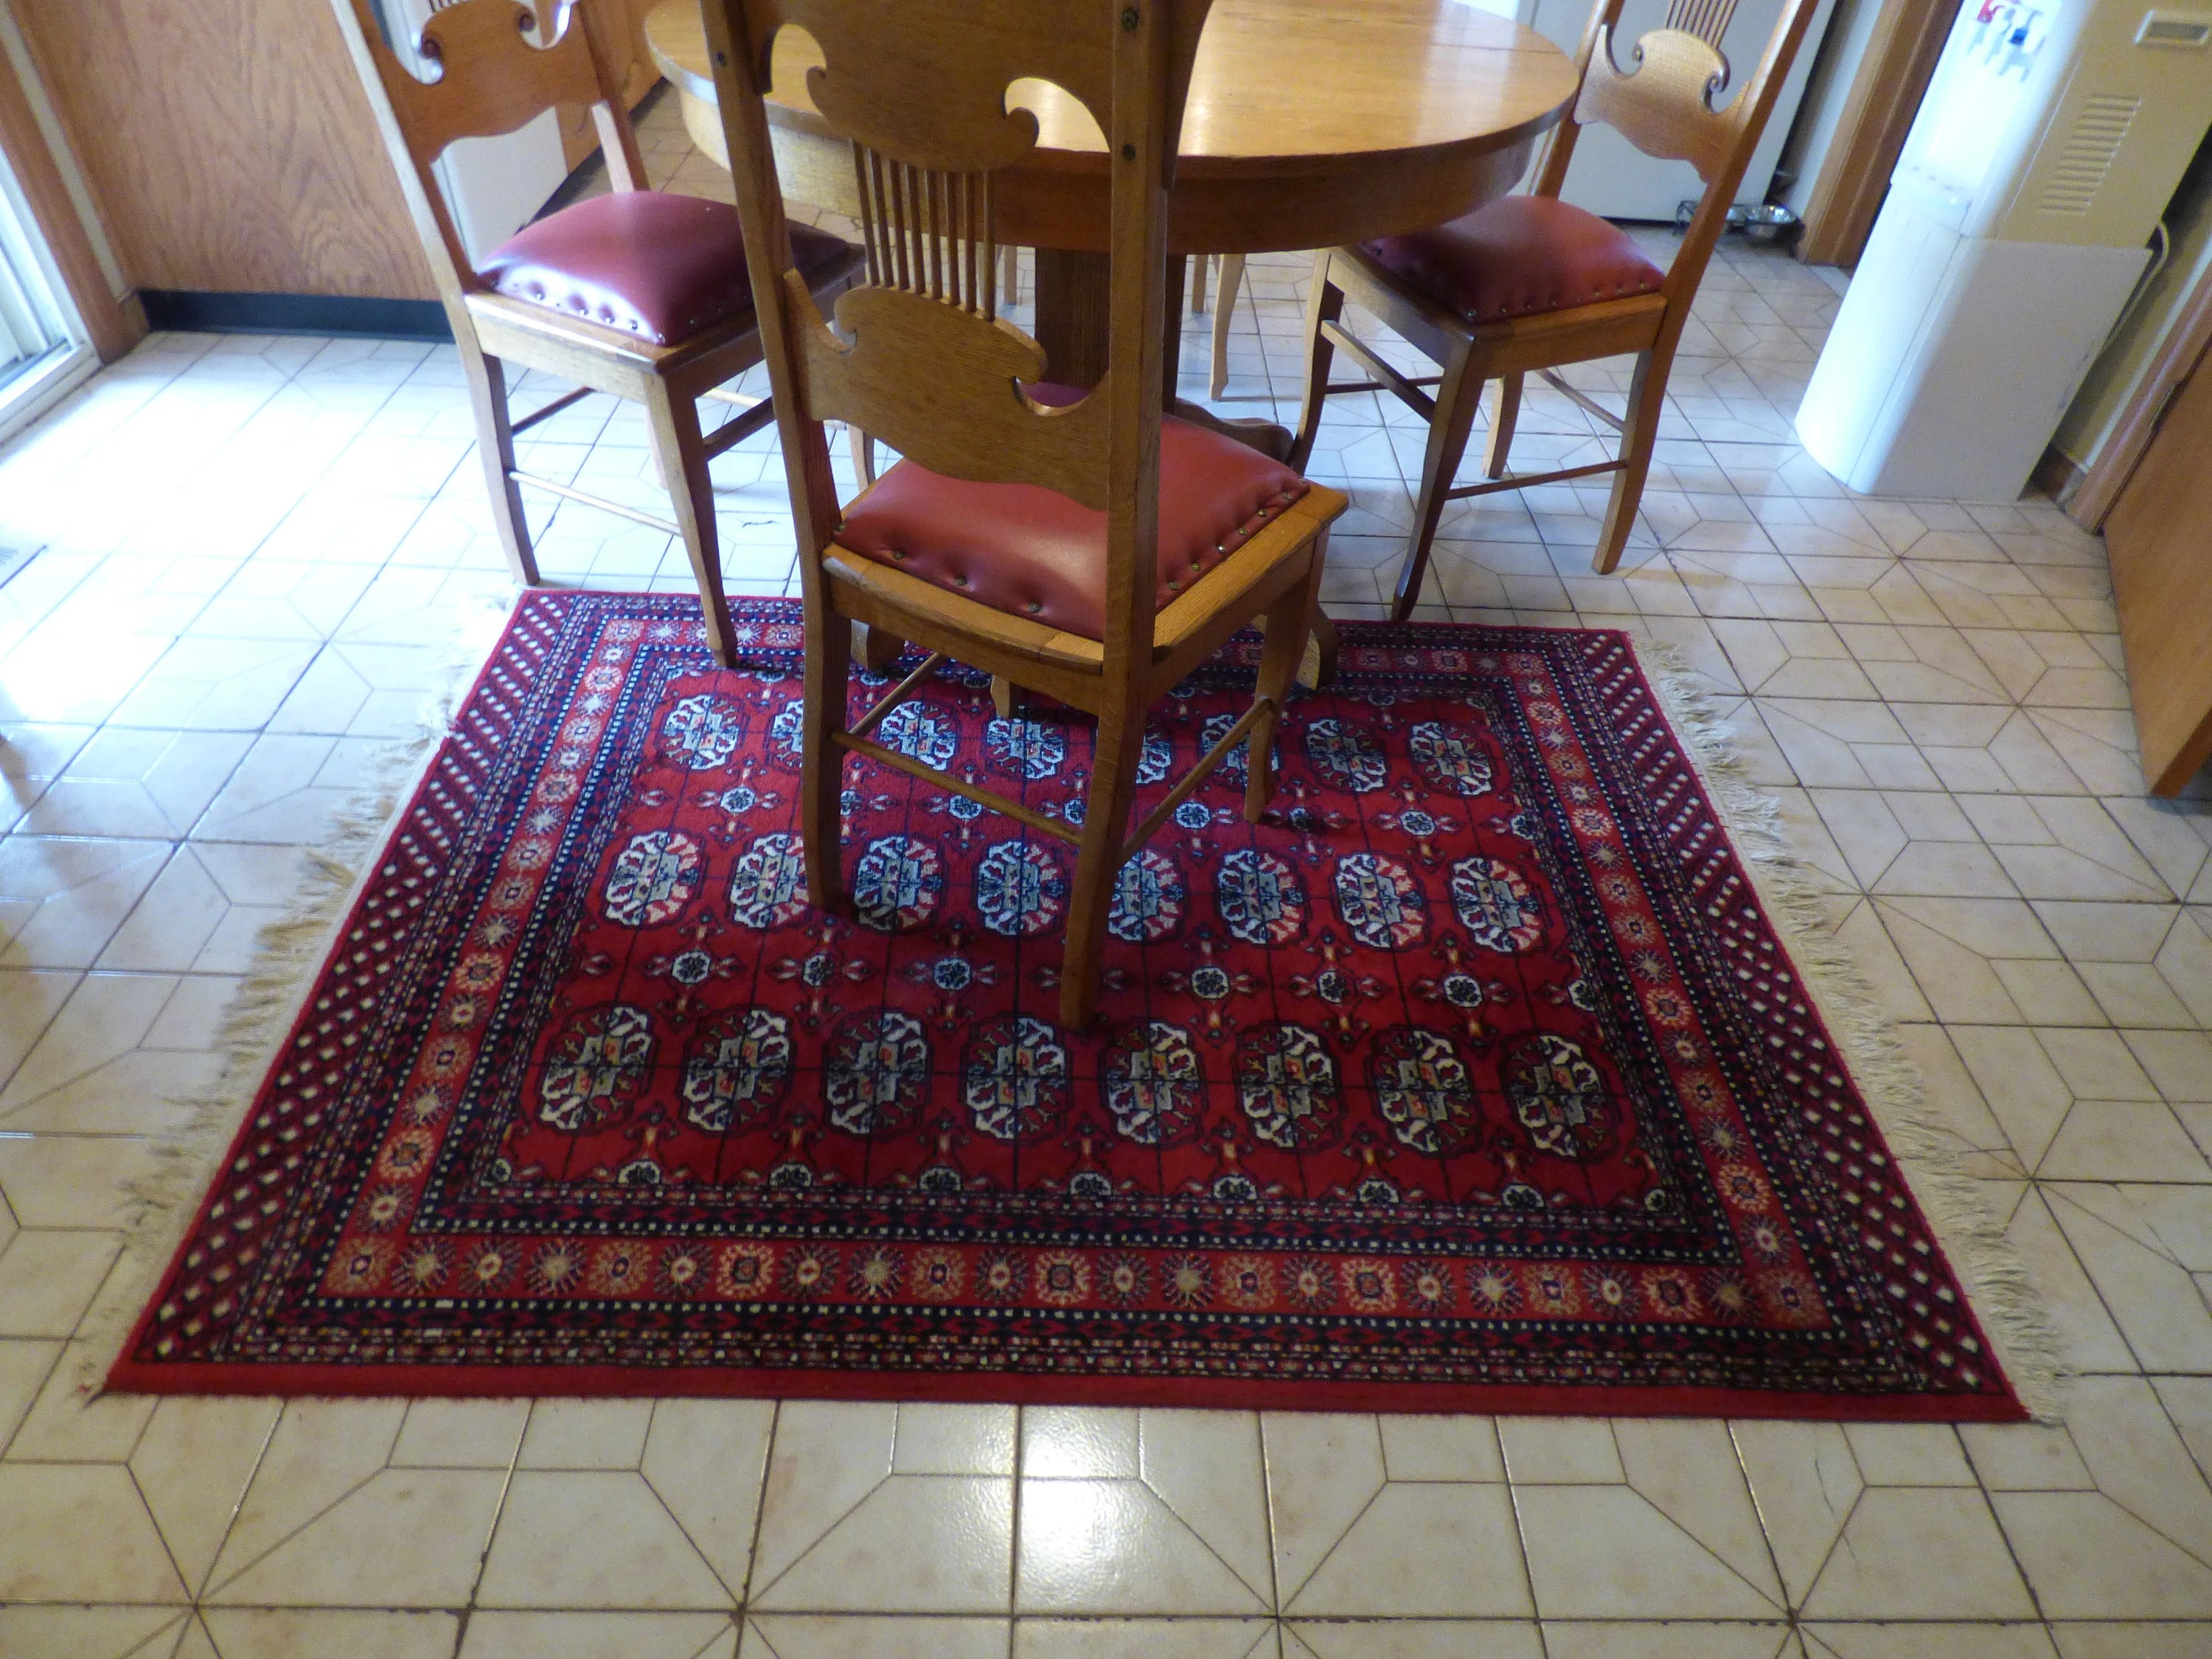 Kamar Vintage Vintage Kamar 100 Worsted Virgin Wool Area Rug Carpet Belgium 5 10